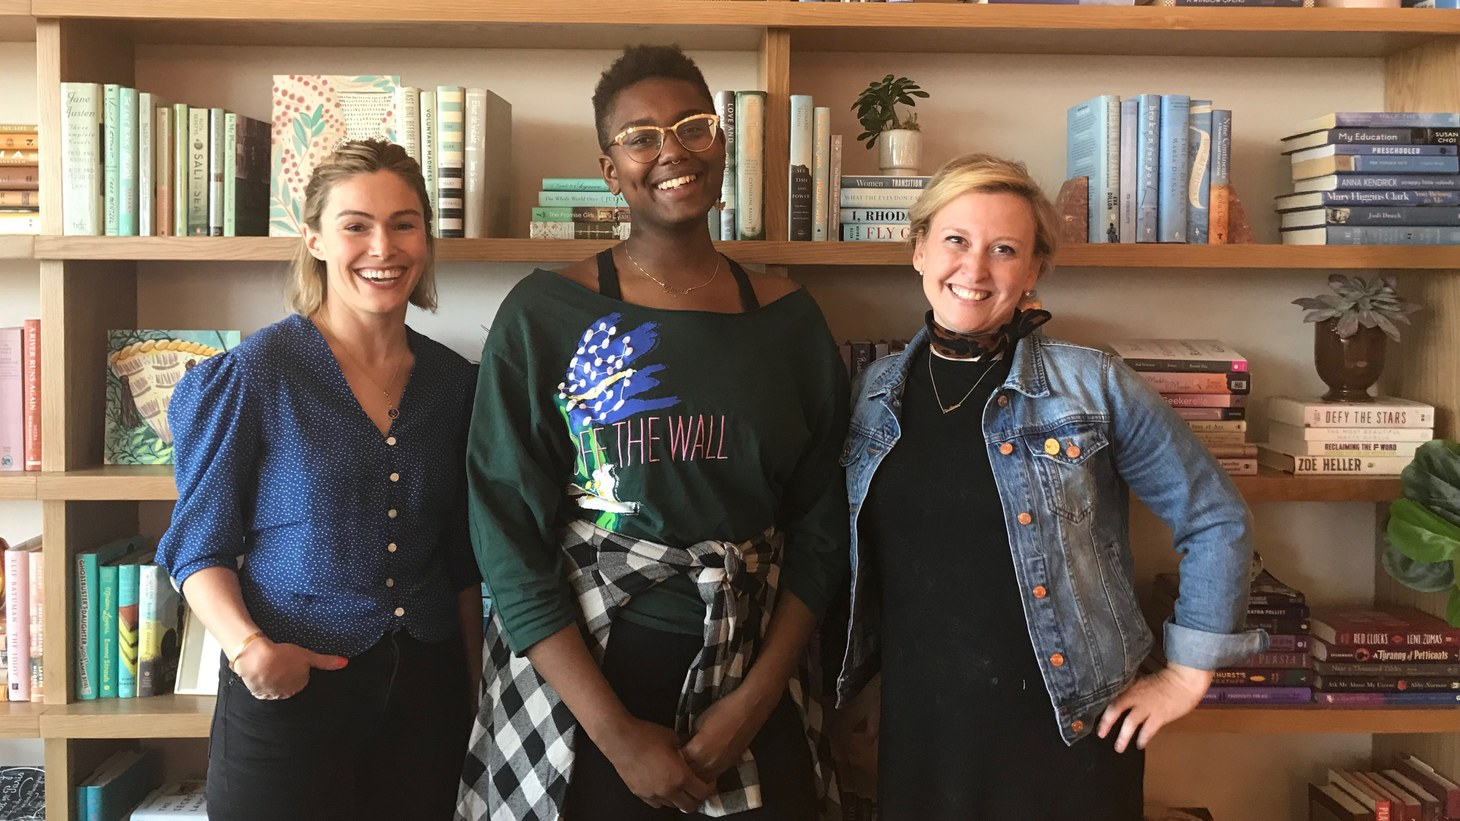 From left to right: The Wing members Meredith Russo, Royal Scales and Jessica Goldklang in front of the lending library sorted by color.